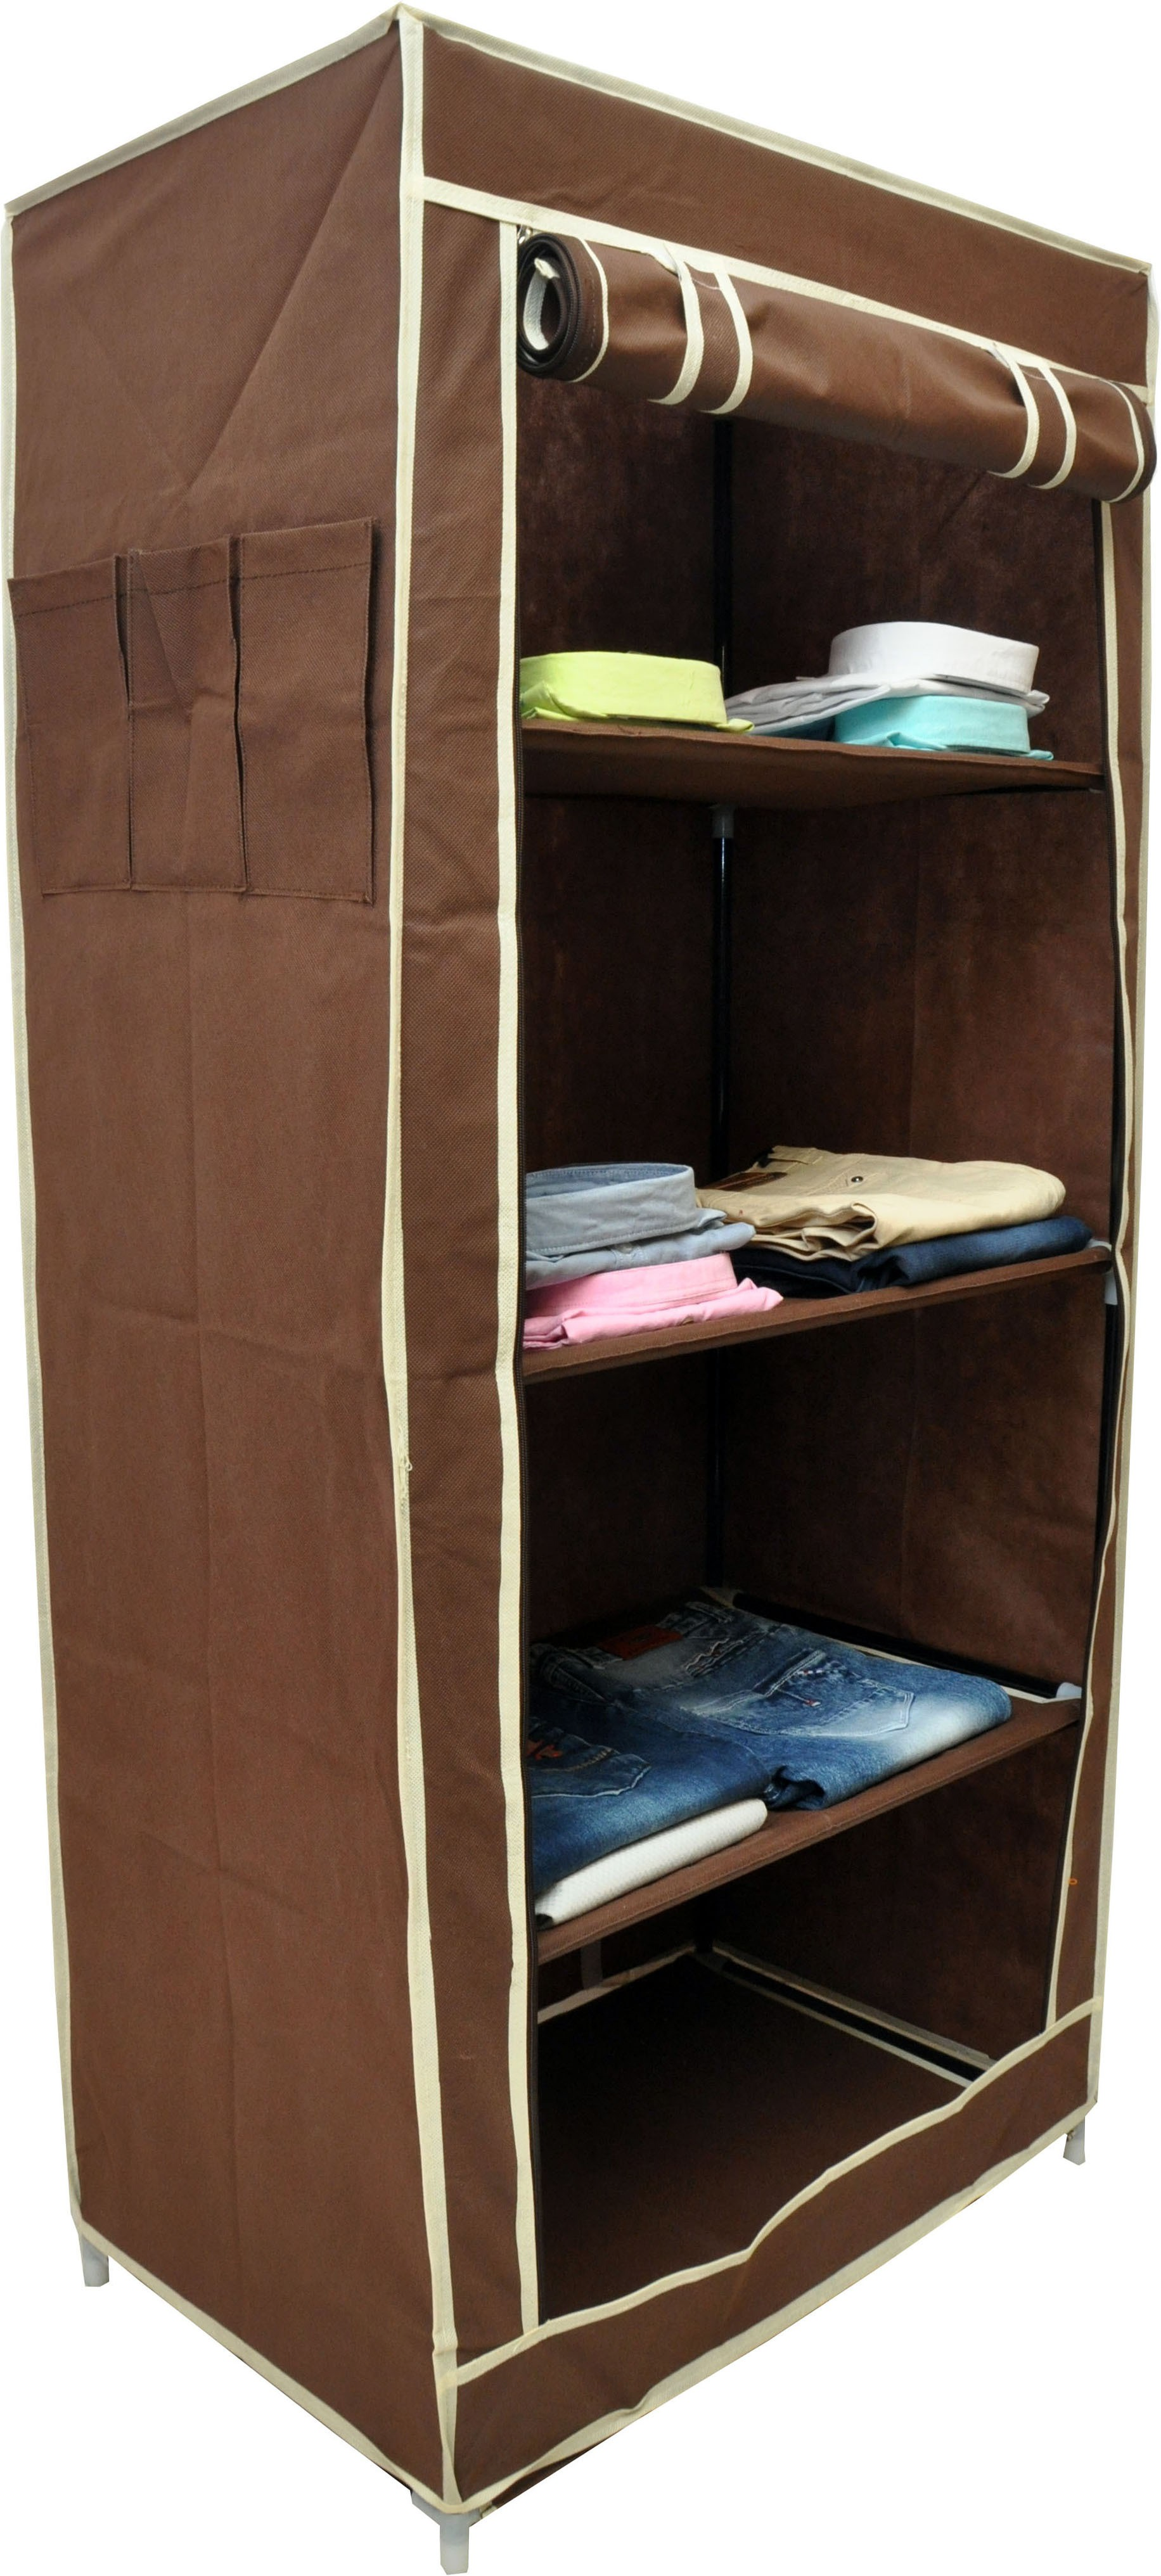 View Solace Single Row Carbon Steel Collapsible Wardrobe(Finish Color - Brown) Furniture (Solace)